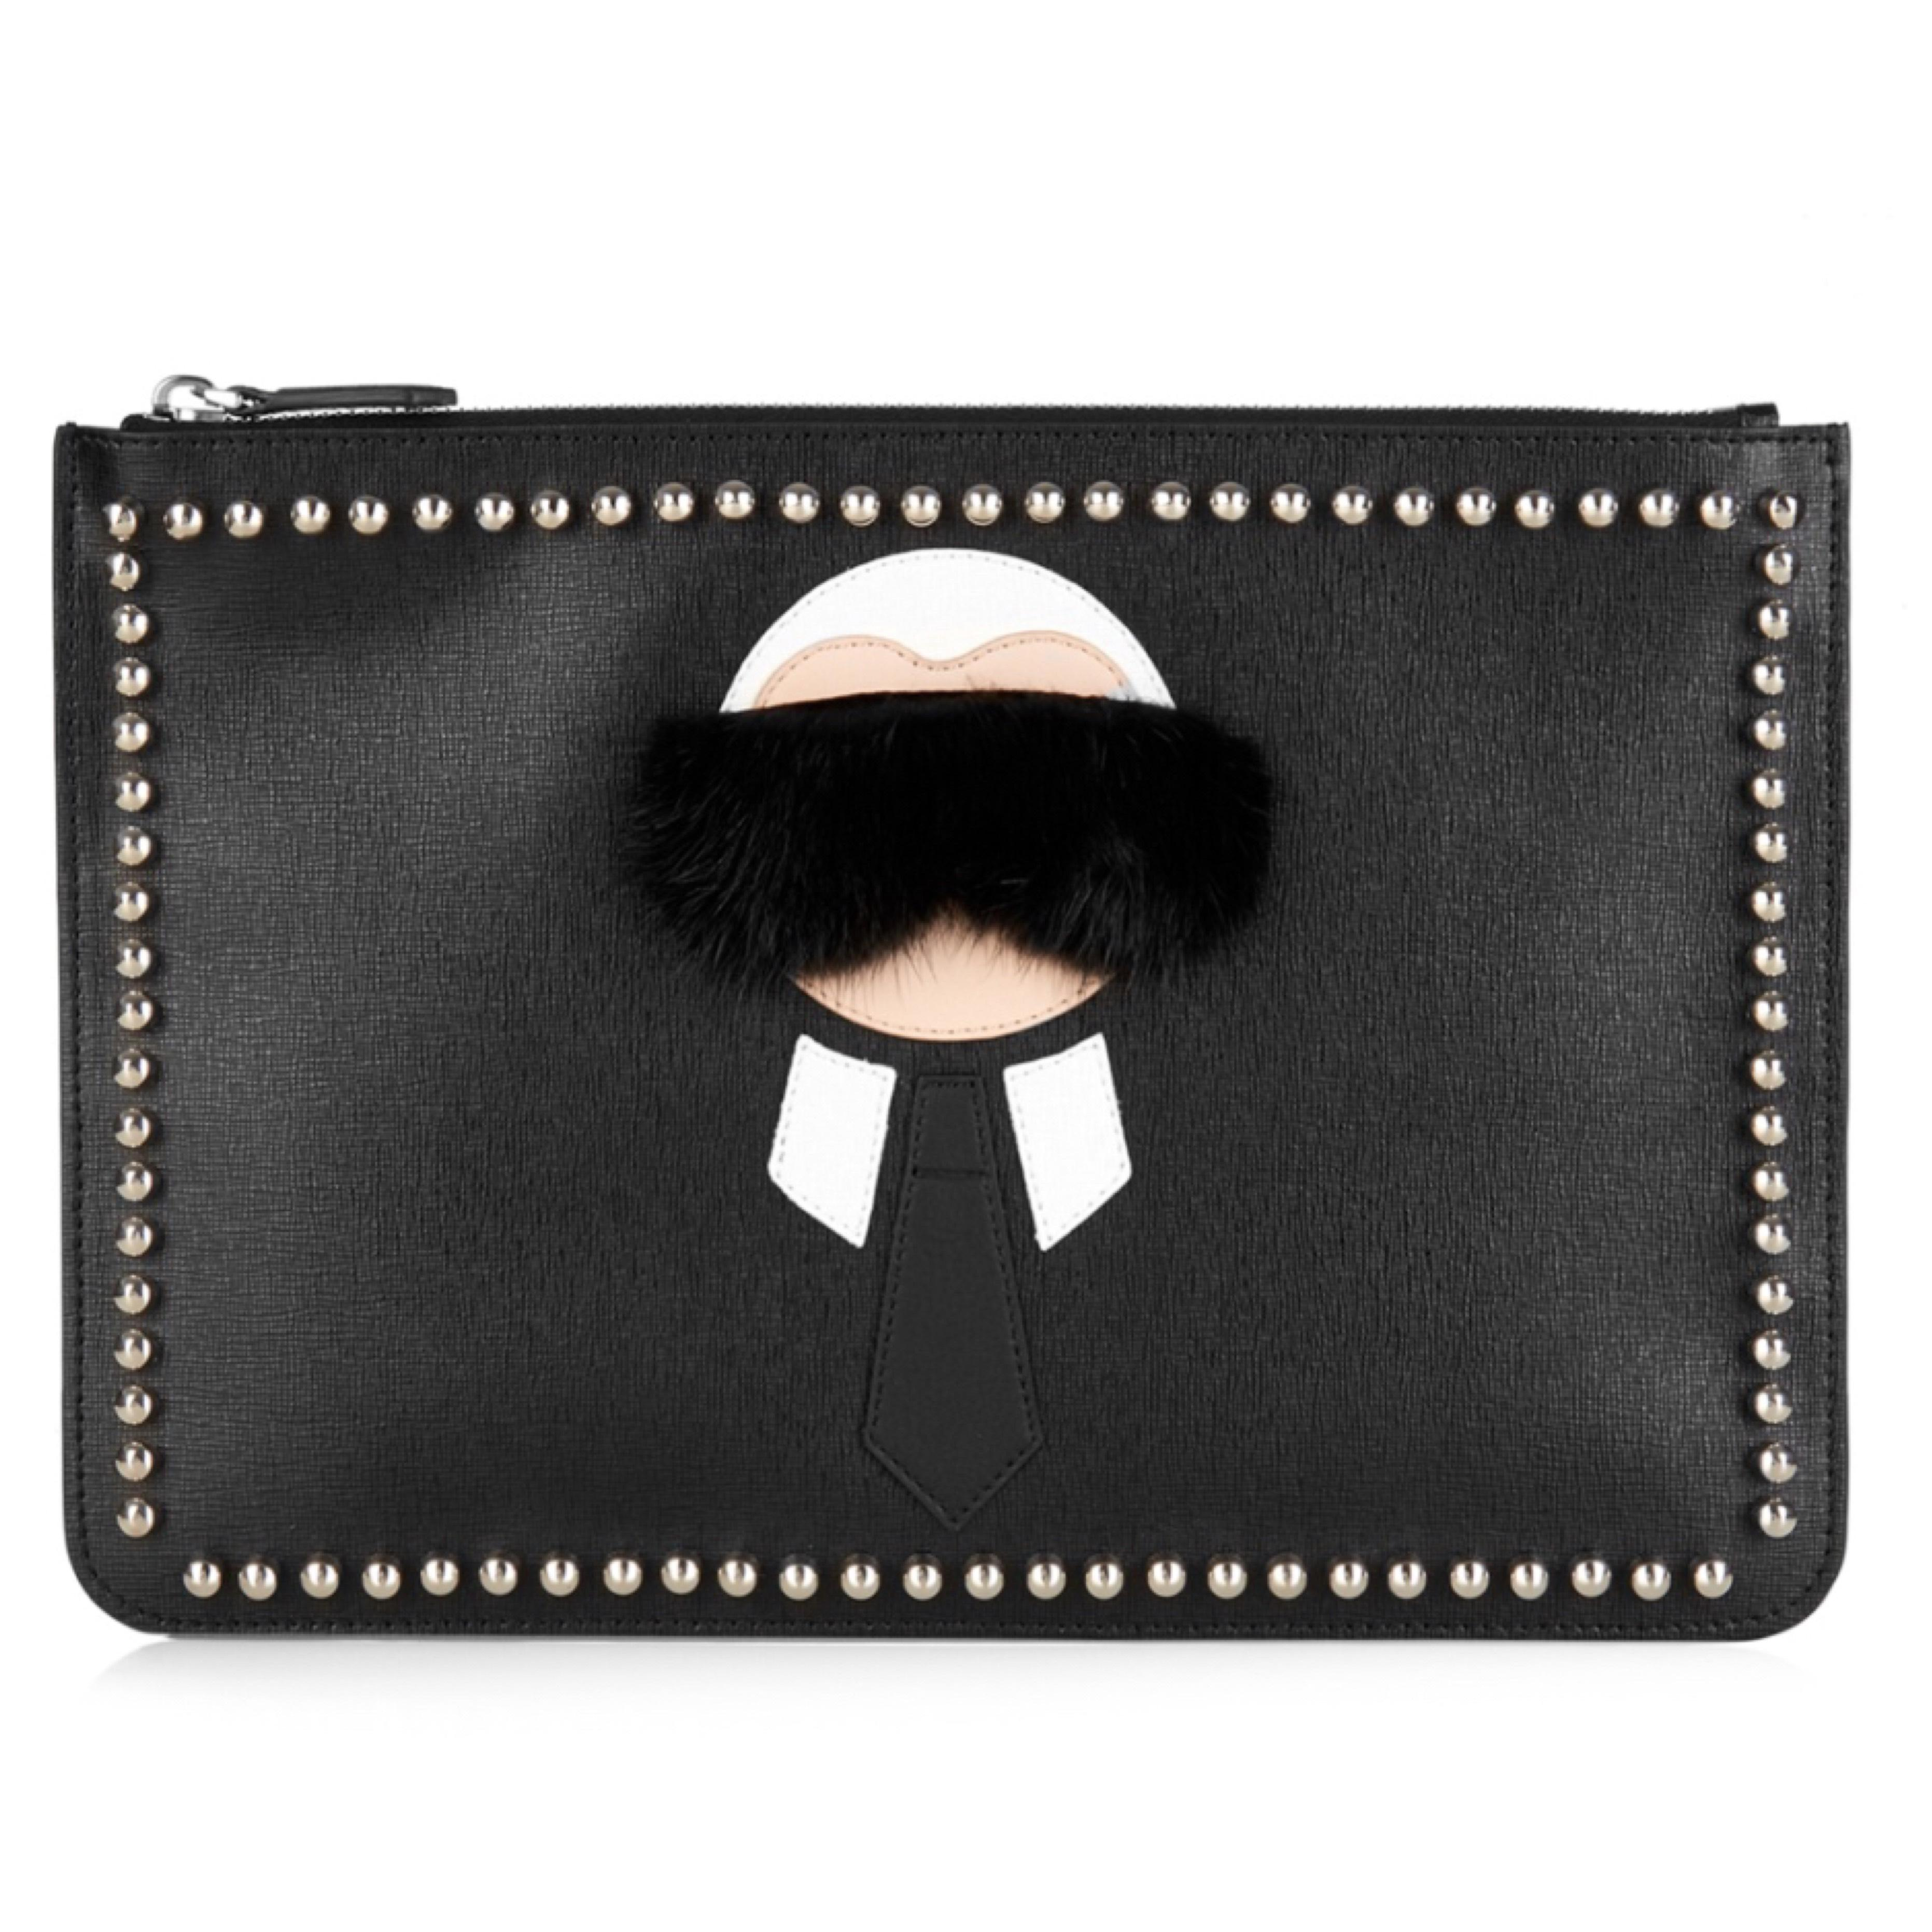 Visit New Online Cheap Sale Clearance Gray leather clutch bag Fendi Cheap Many Kinds Of Sale 100% Guaranteed qPVHRhI